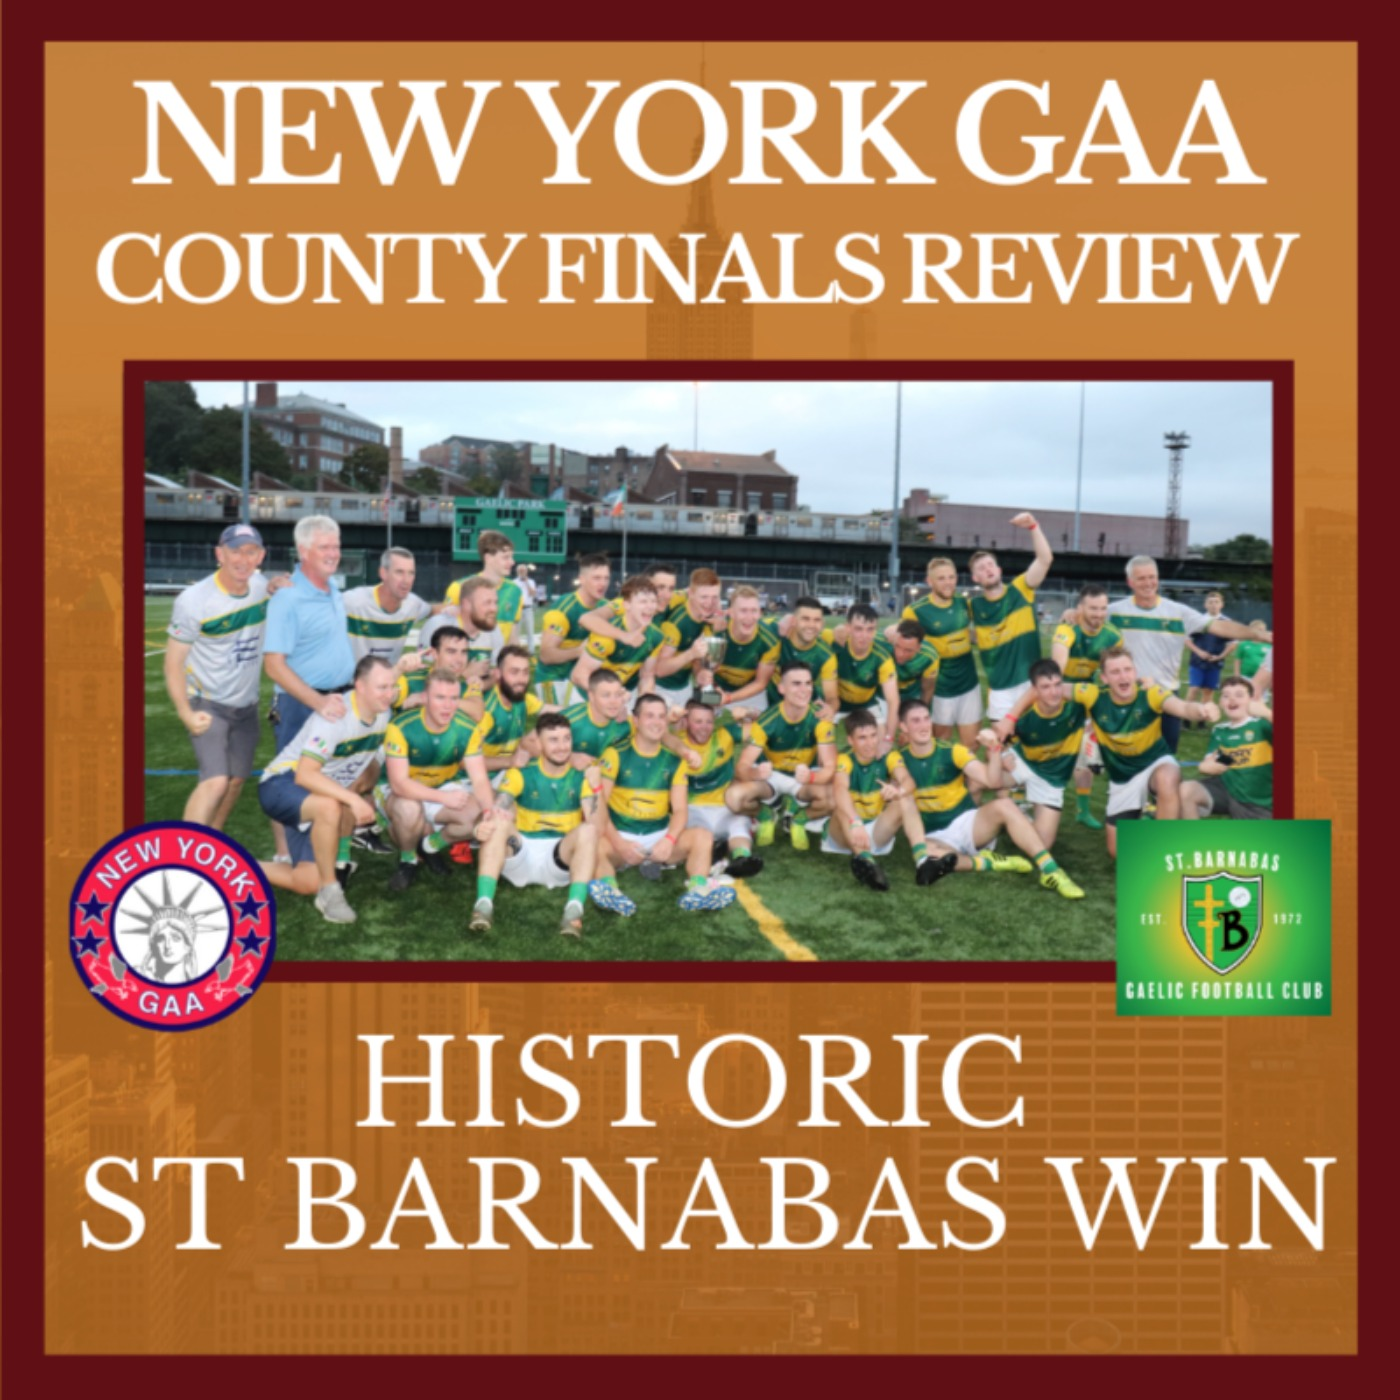 New York GAA County Finals Review – Historic St. Barnabas Win